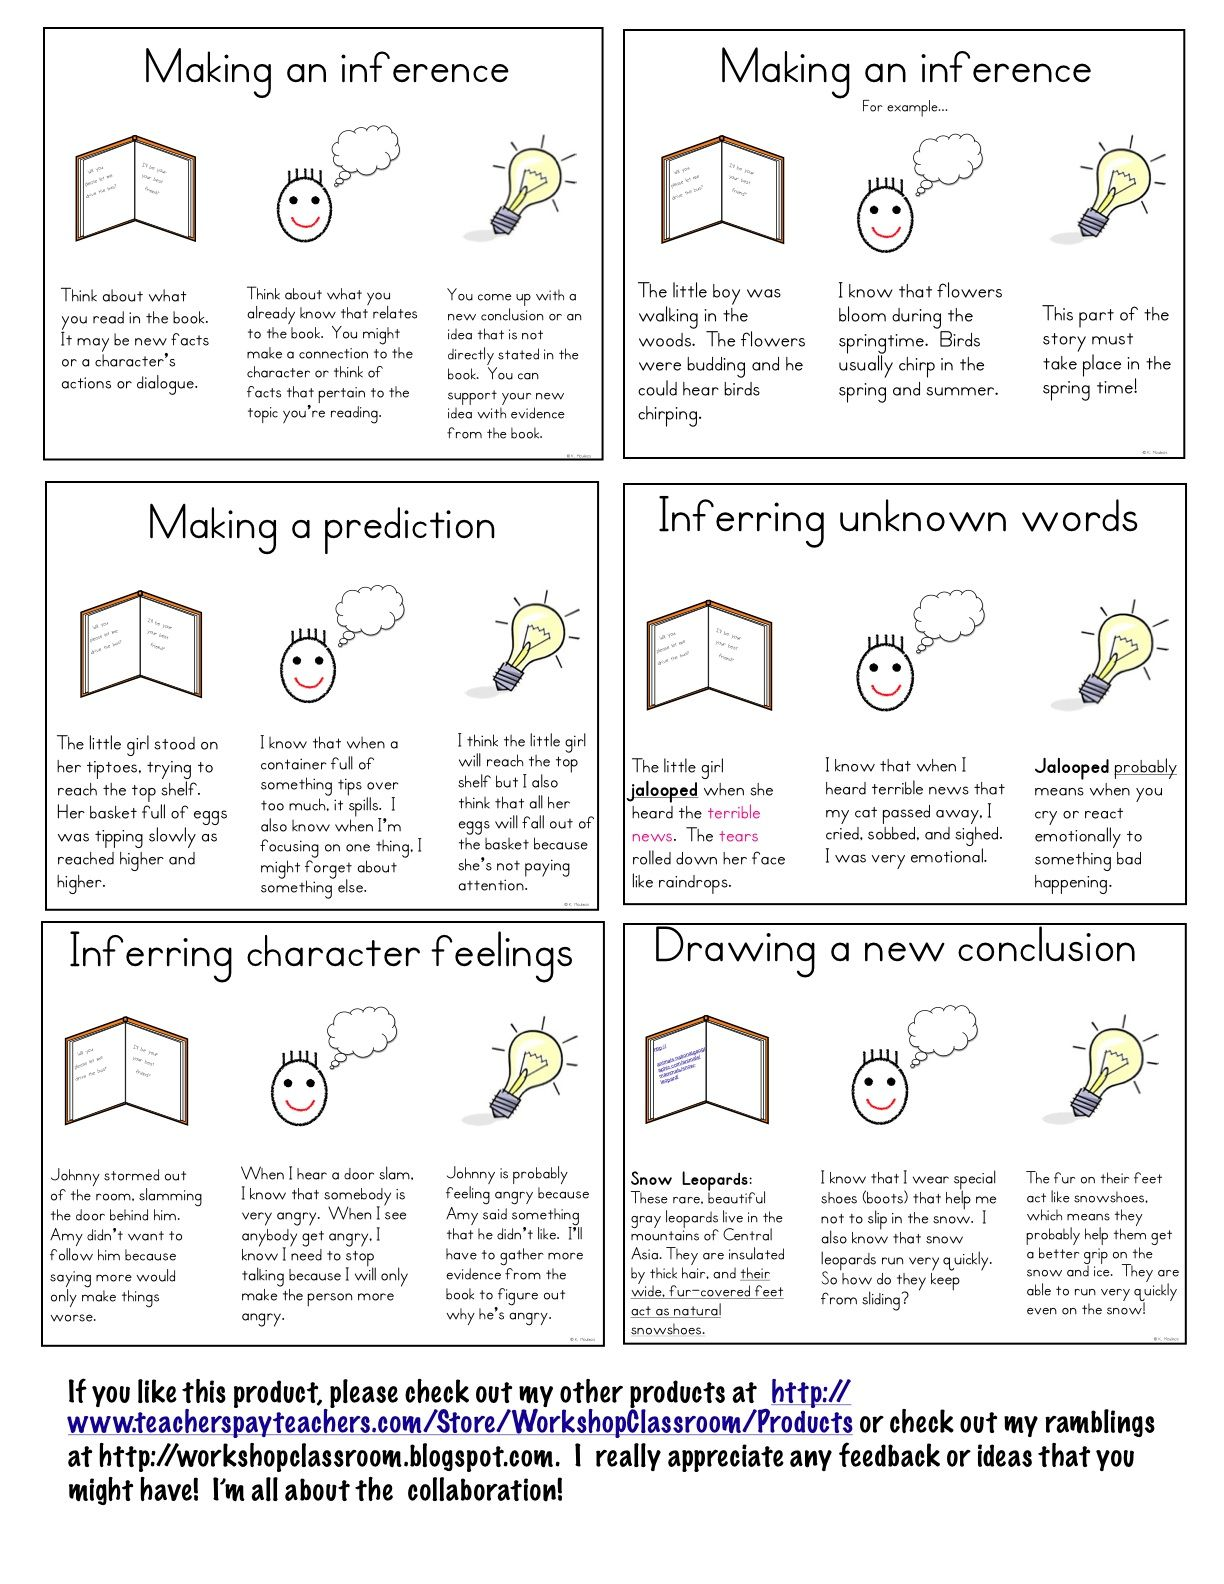 Free Worksheet Inferences Worksheet 4 17 best images about reading inferences drawing conclusions on pinterest graphic organizers lesson plans and videos